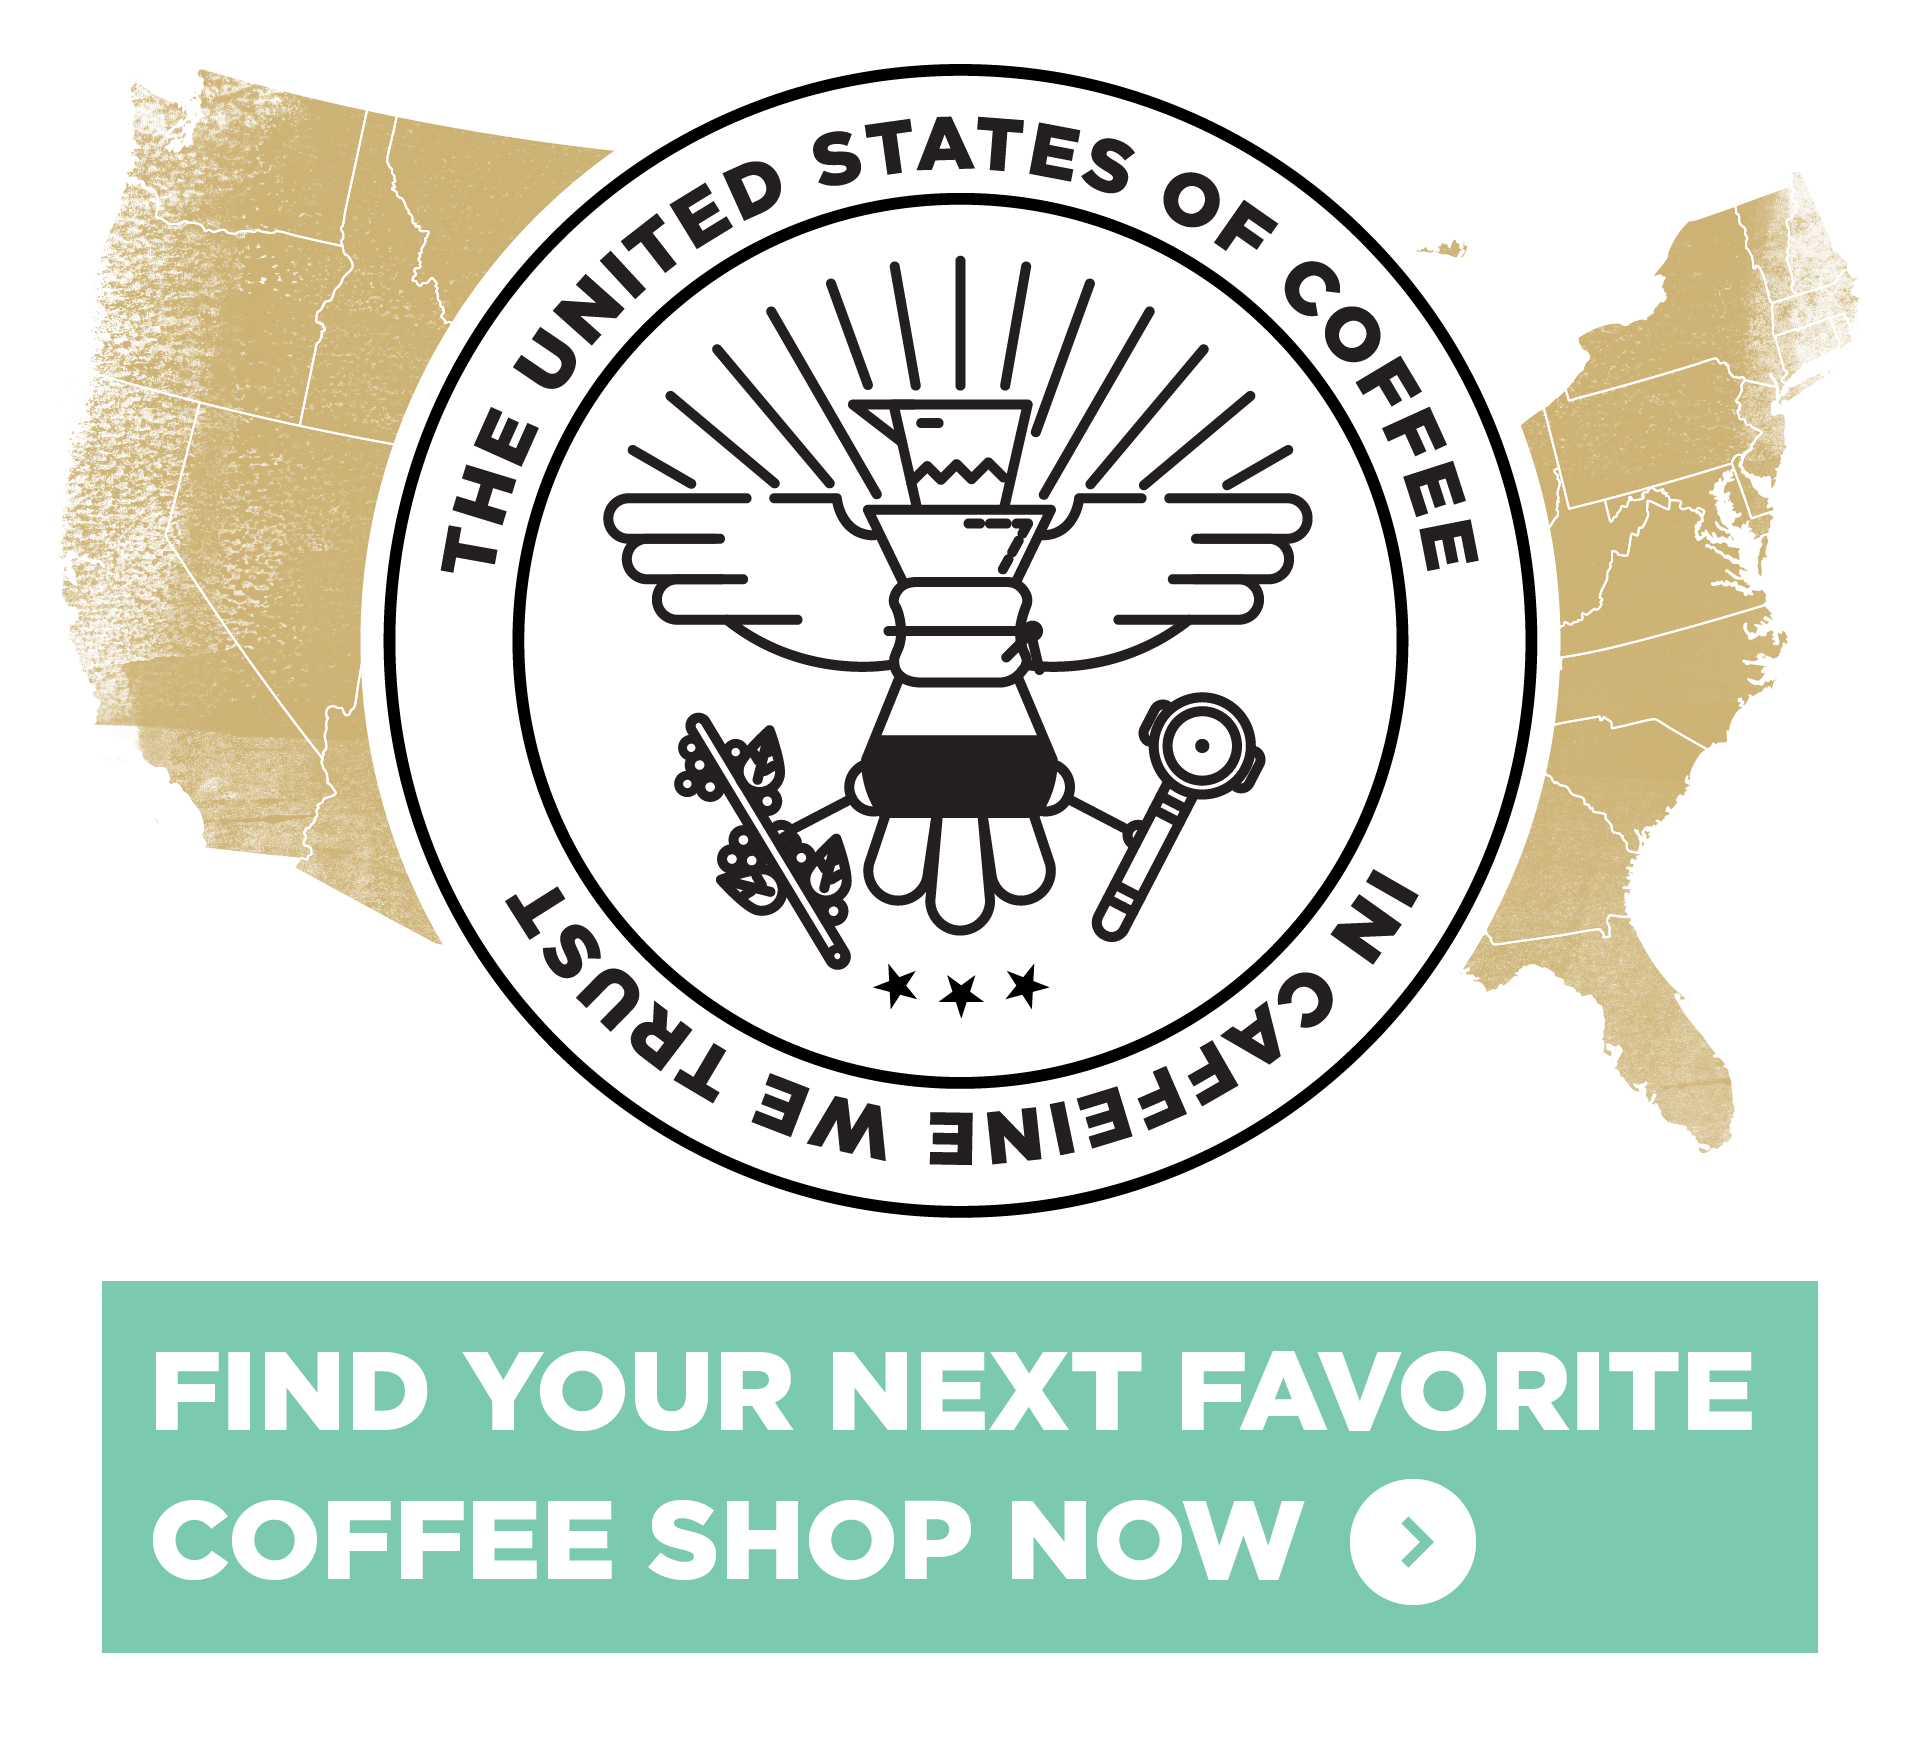 The United States of Coffee Logo